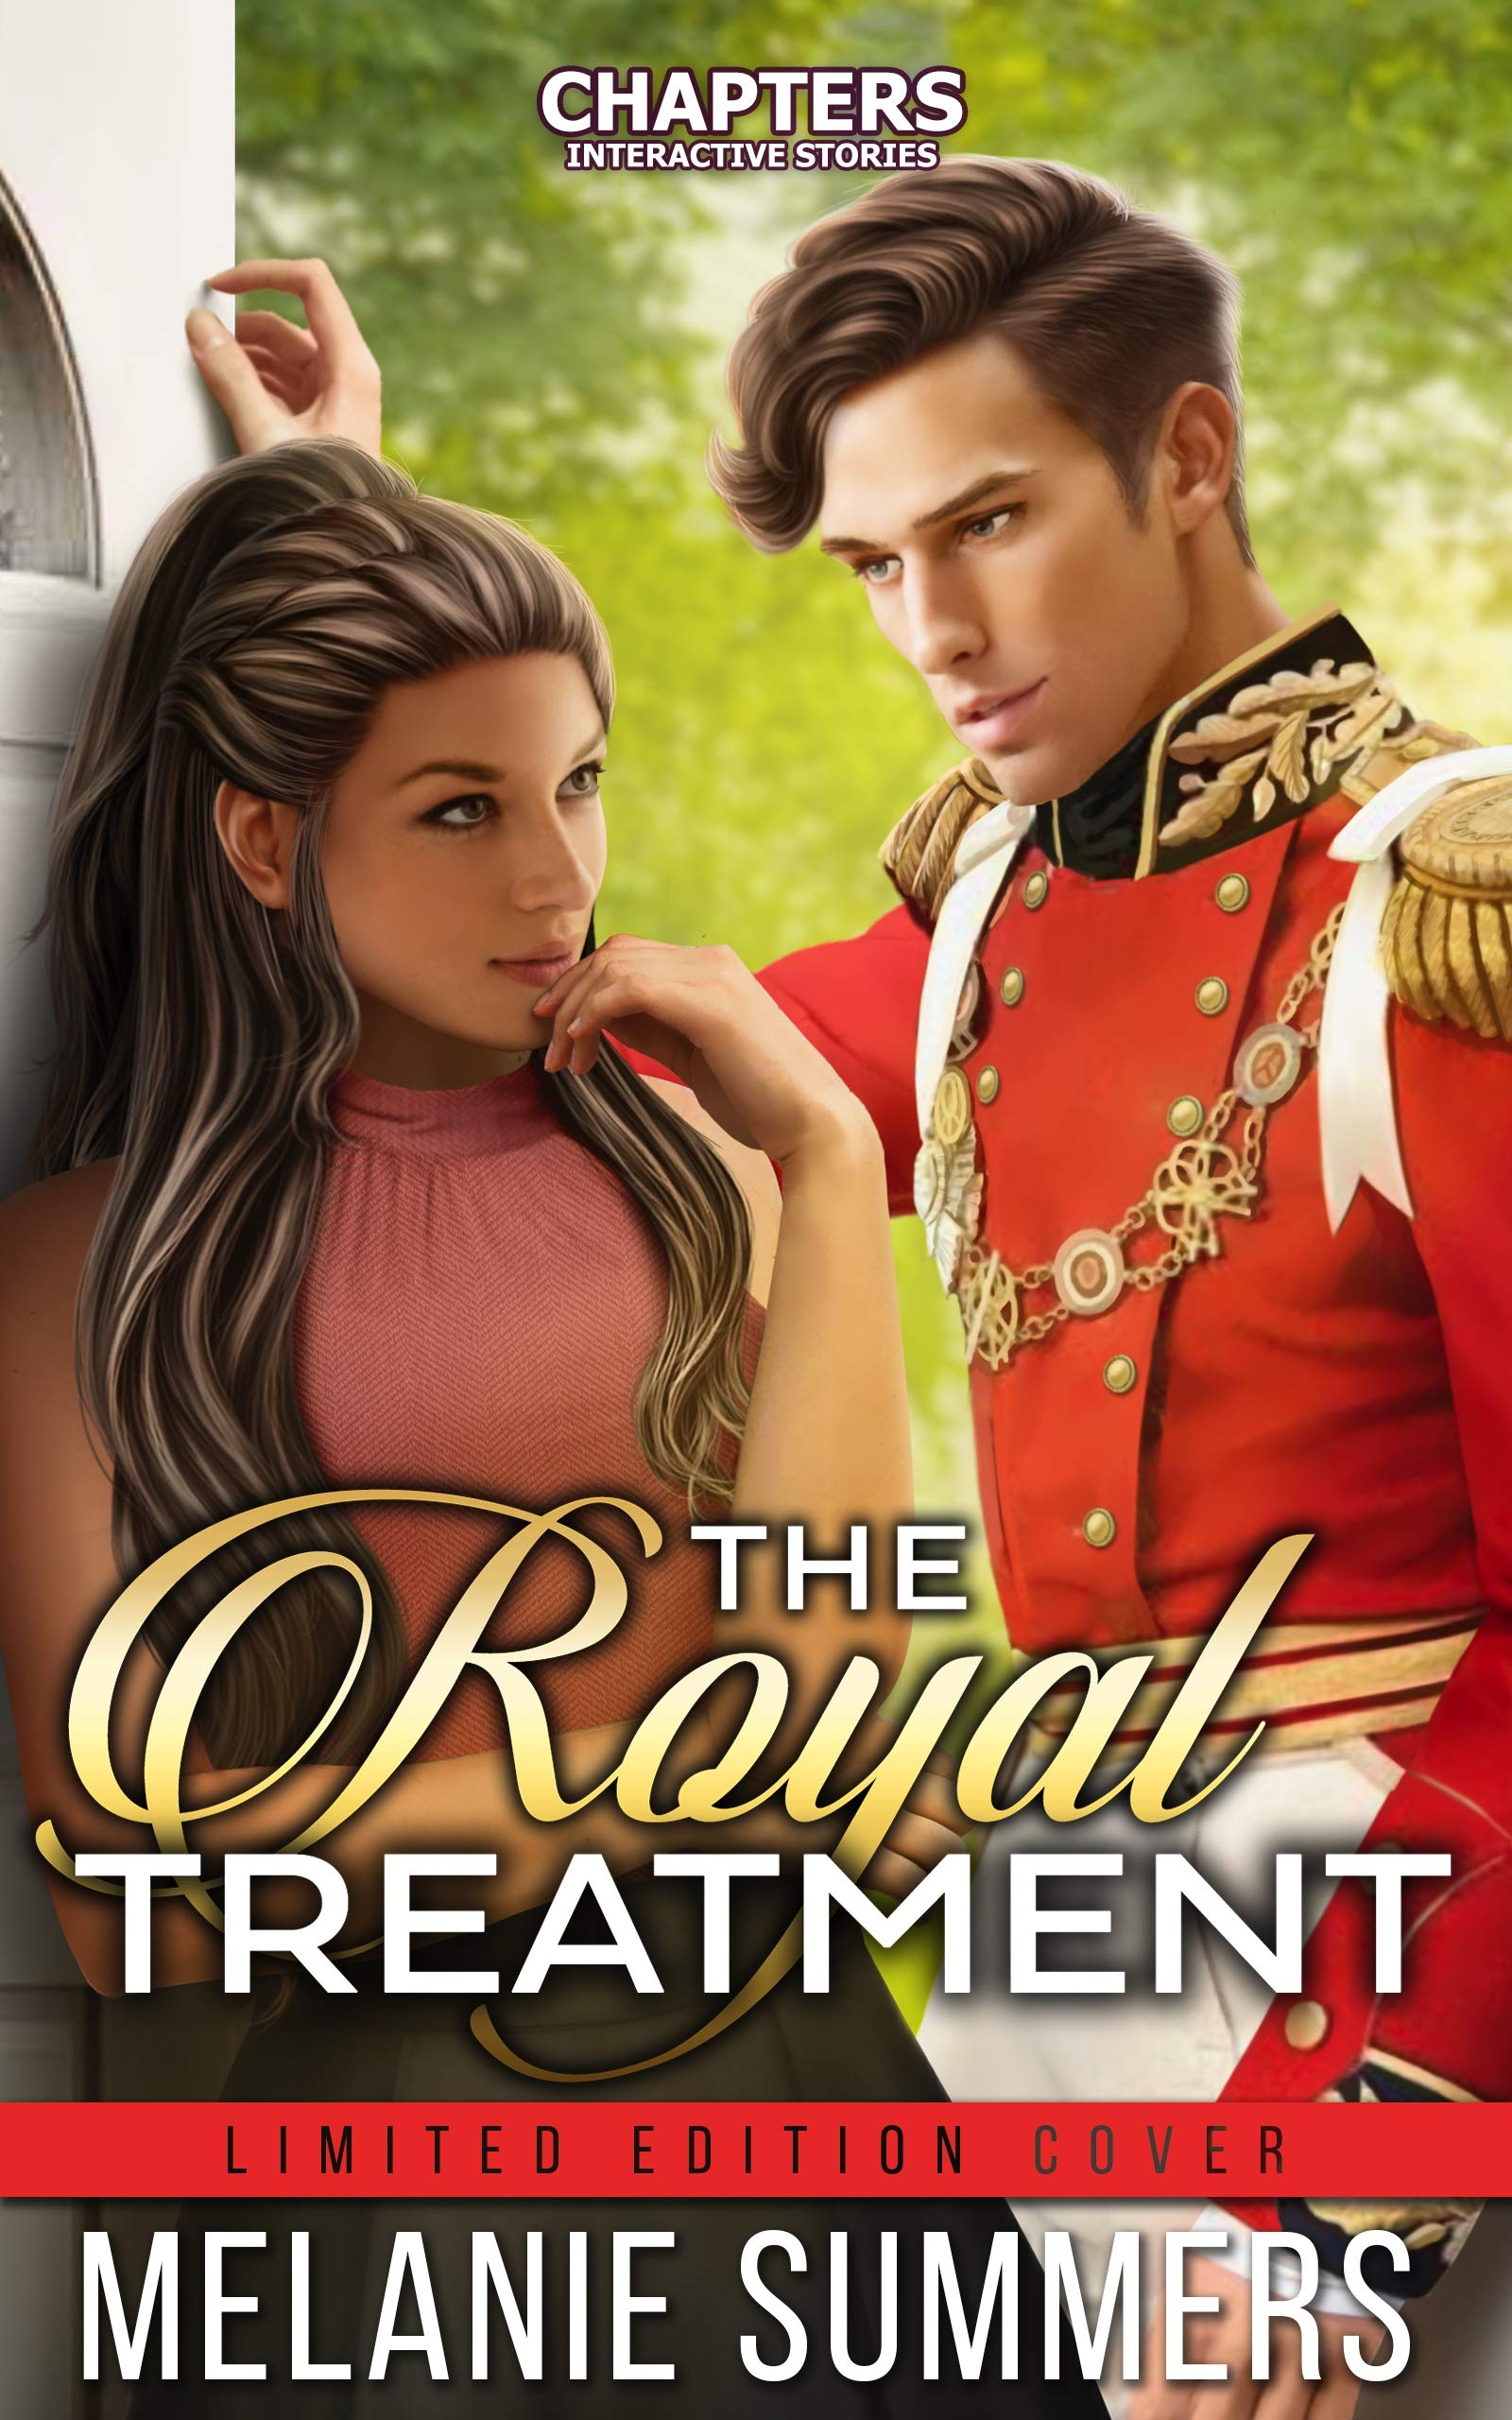 The Royal Treatment: Chapters Interative Story Limited Edition Cover